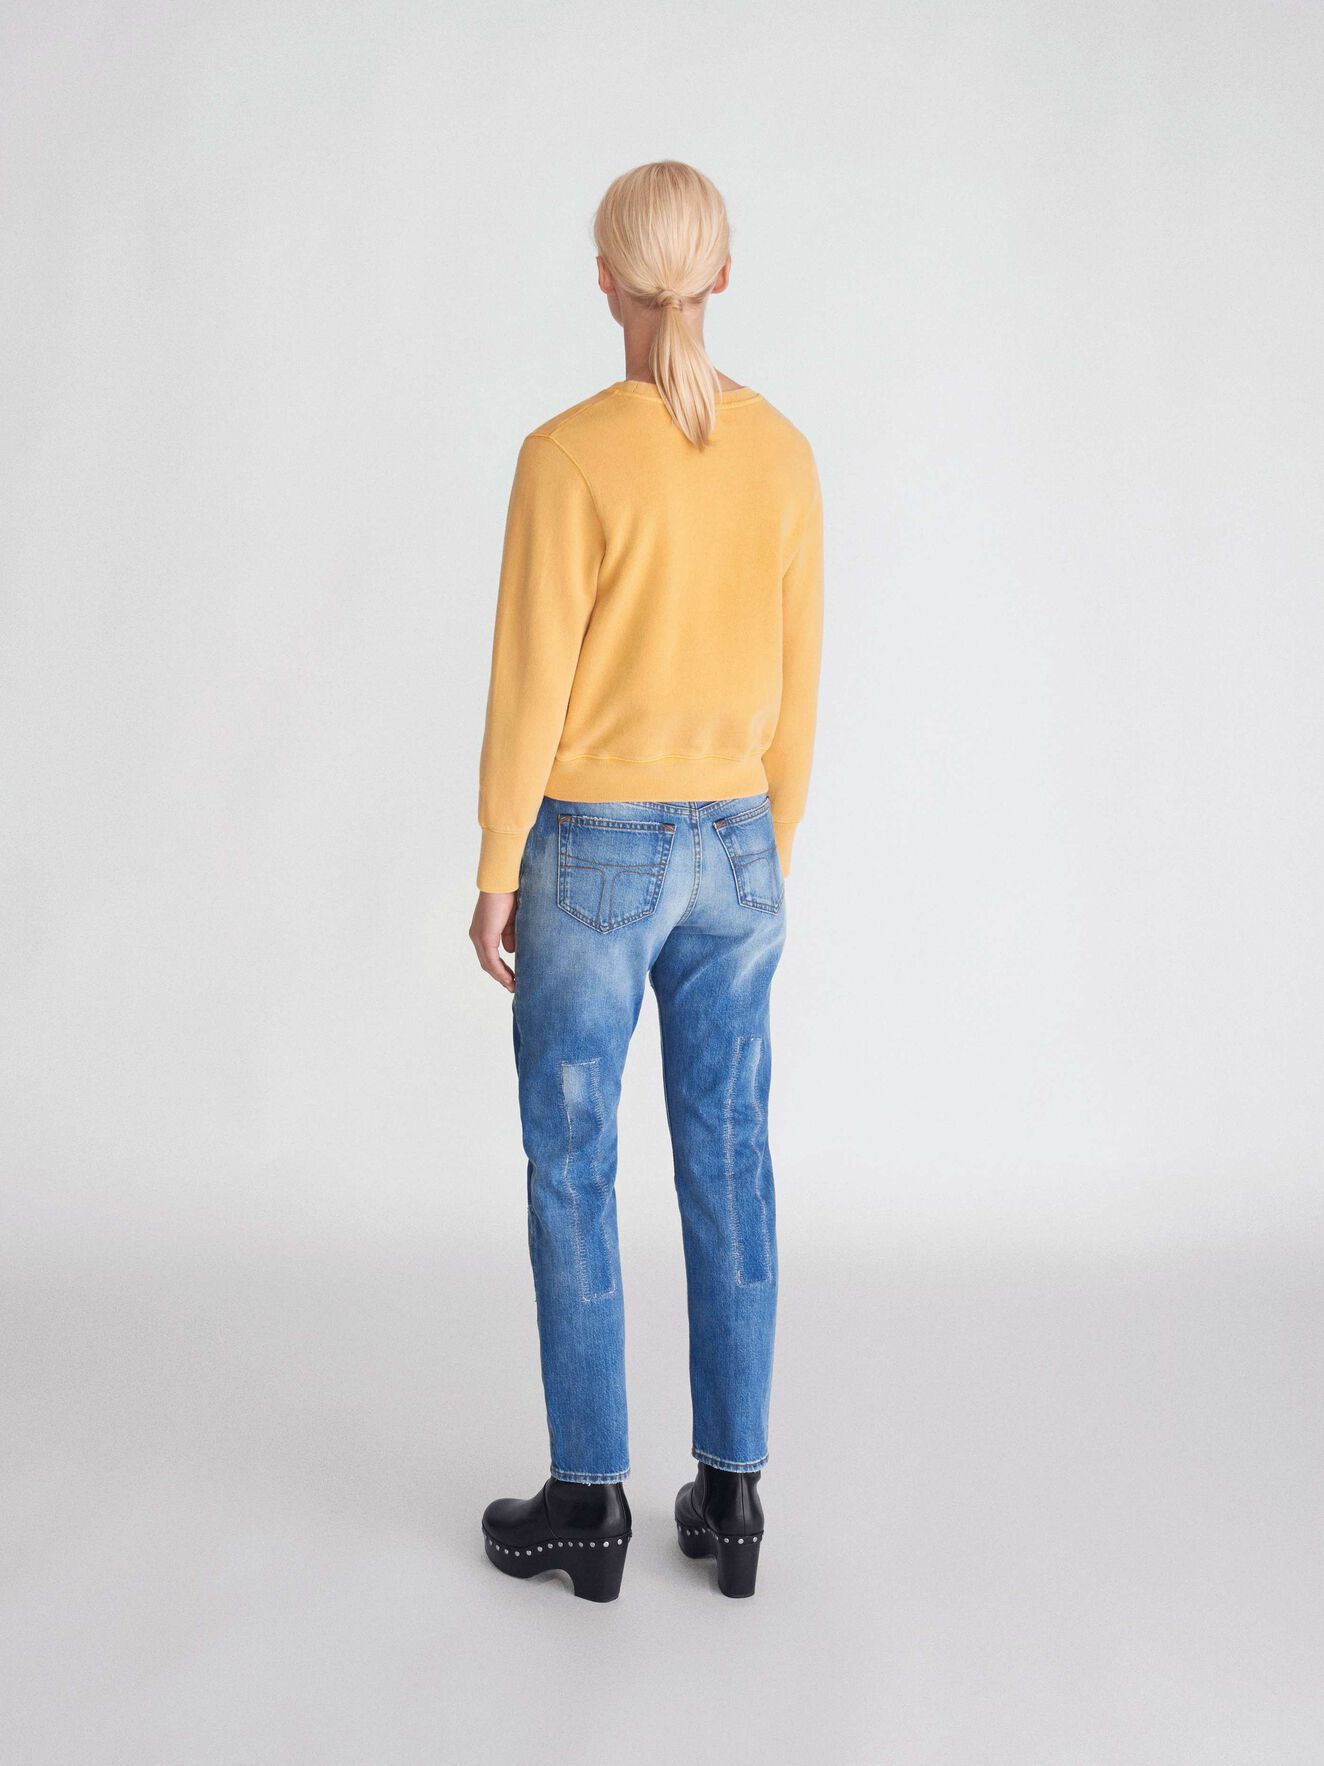 Obscura Pr Sweatshirt in Mustard from Tiger of Sweden